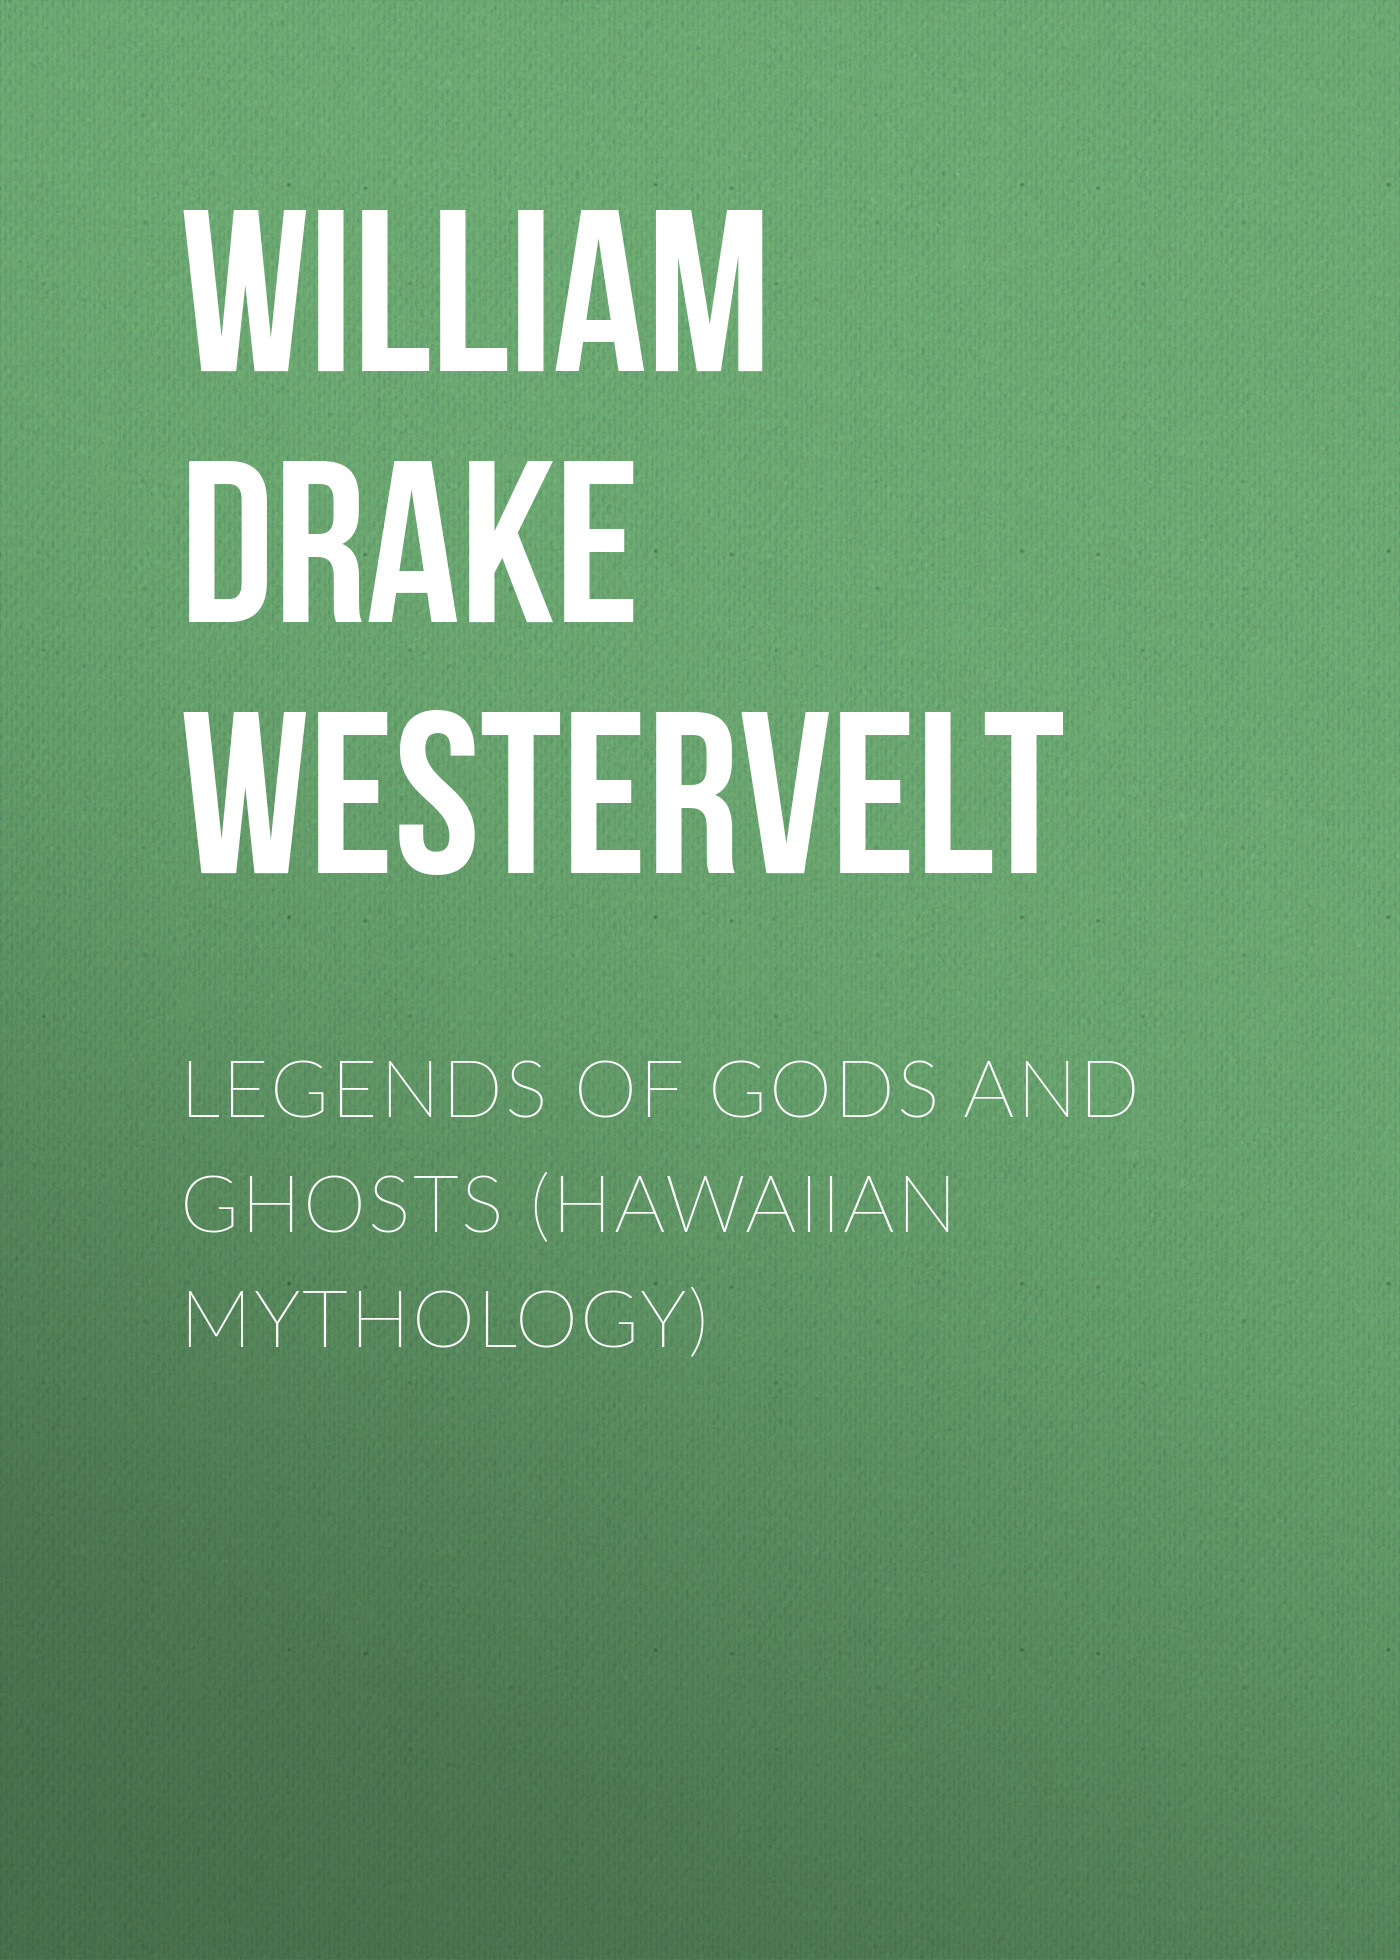 William Drake Westervelt Legends of Gods and Ghosts (Hawaiian Mythology) конструктор lego ninjago вестник бури 70652